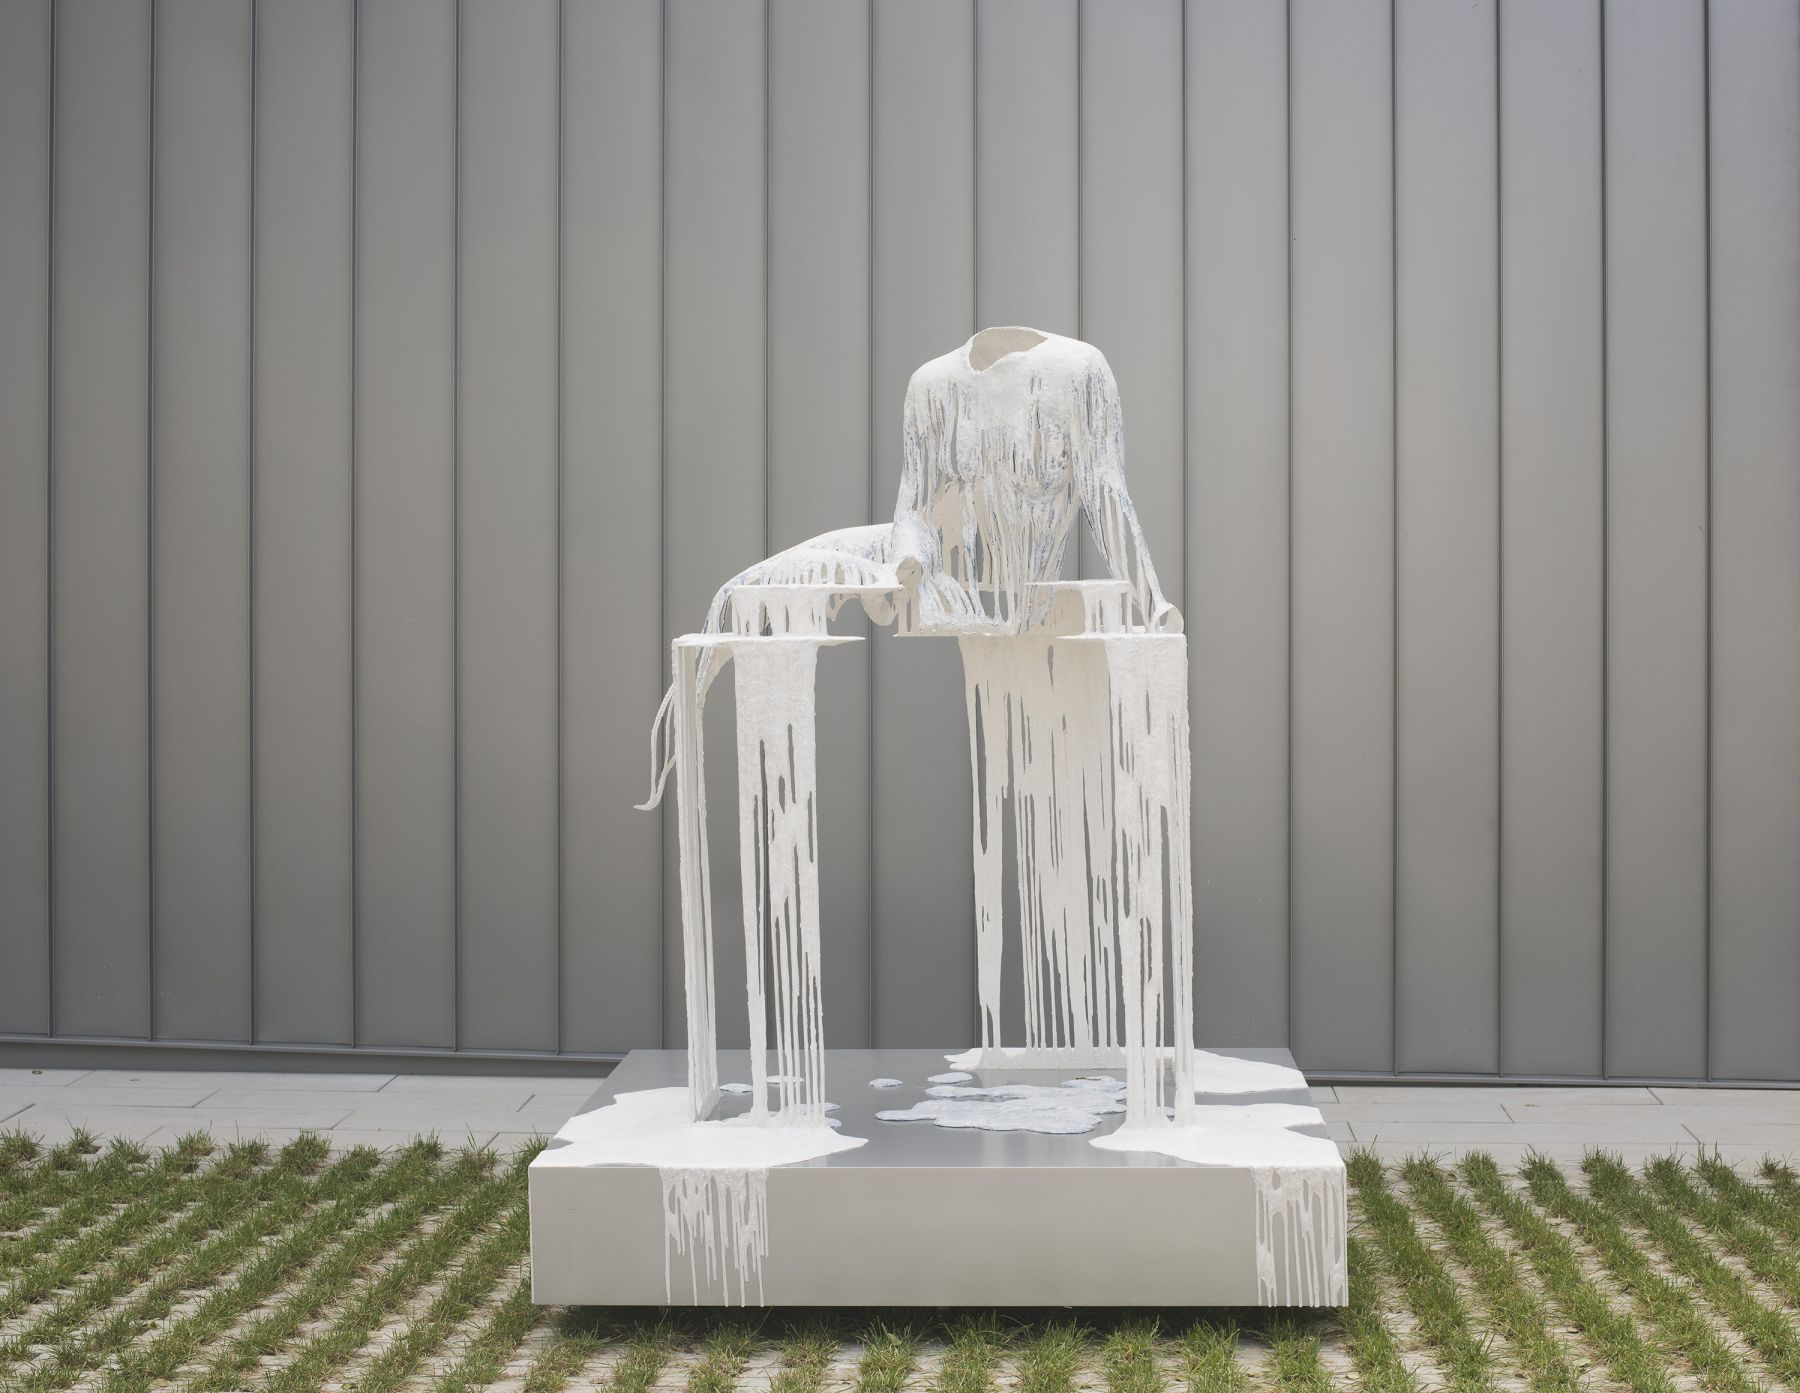 a headless figure of a woman's body - a sculpture by Diana-Al-Hadid